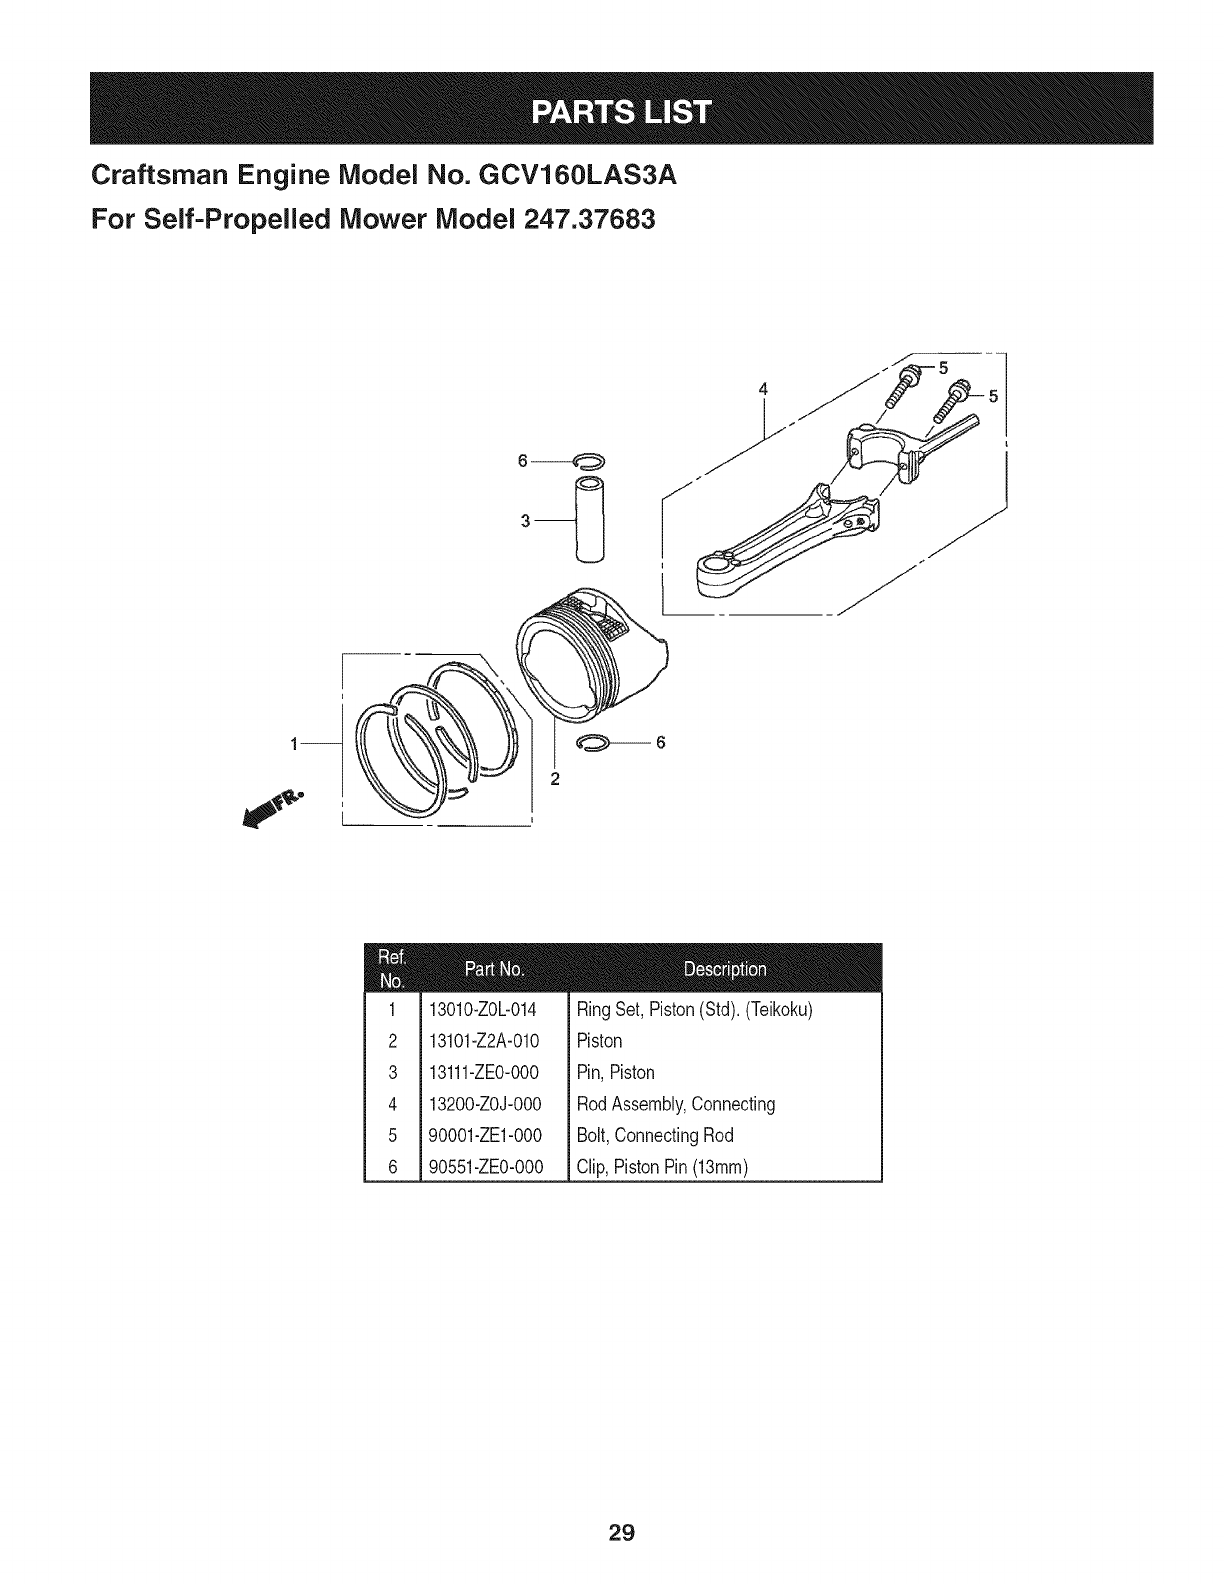 Page 29 of Craftsman Lawn Mower 247.37683 User Guide